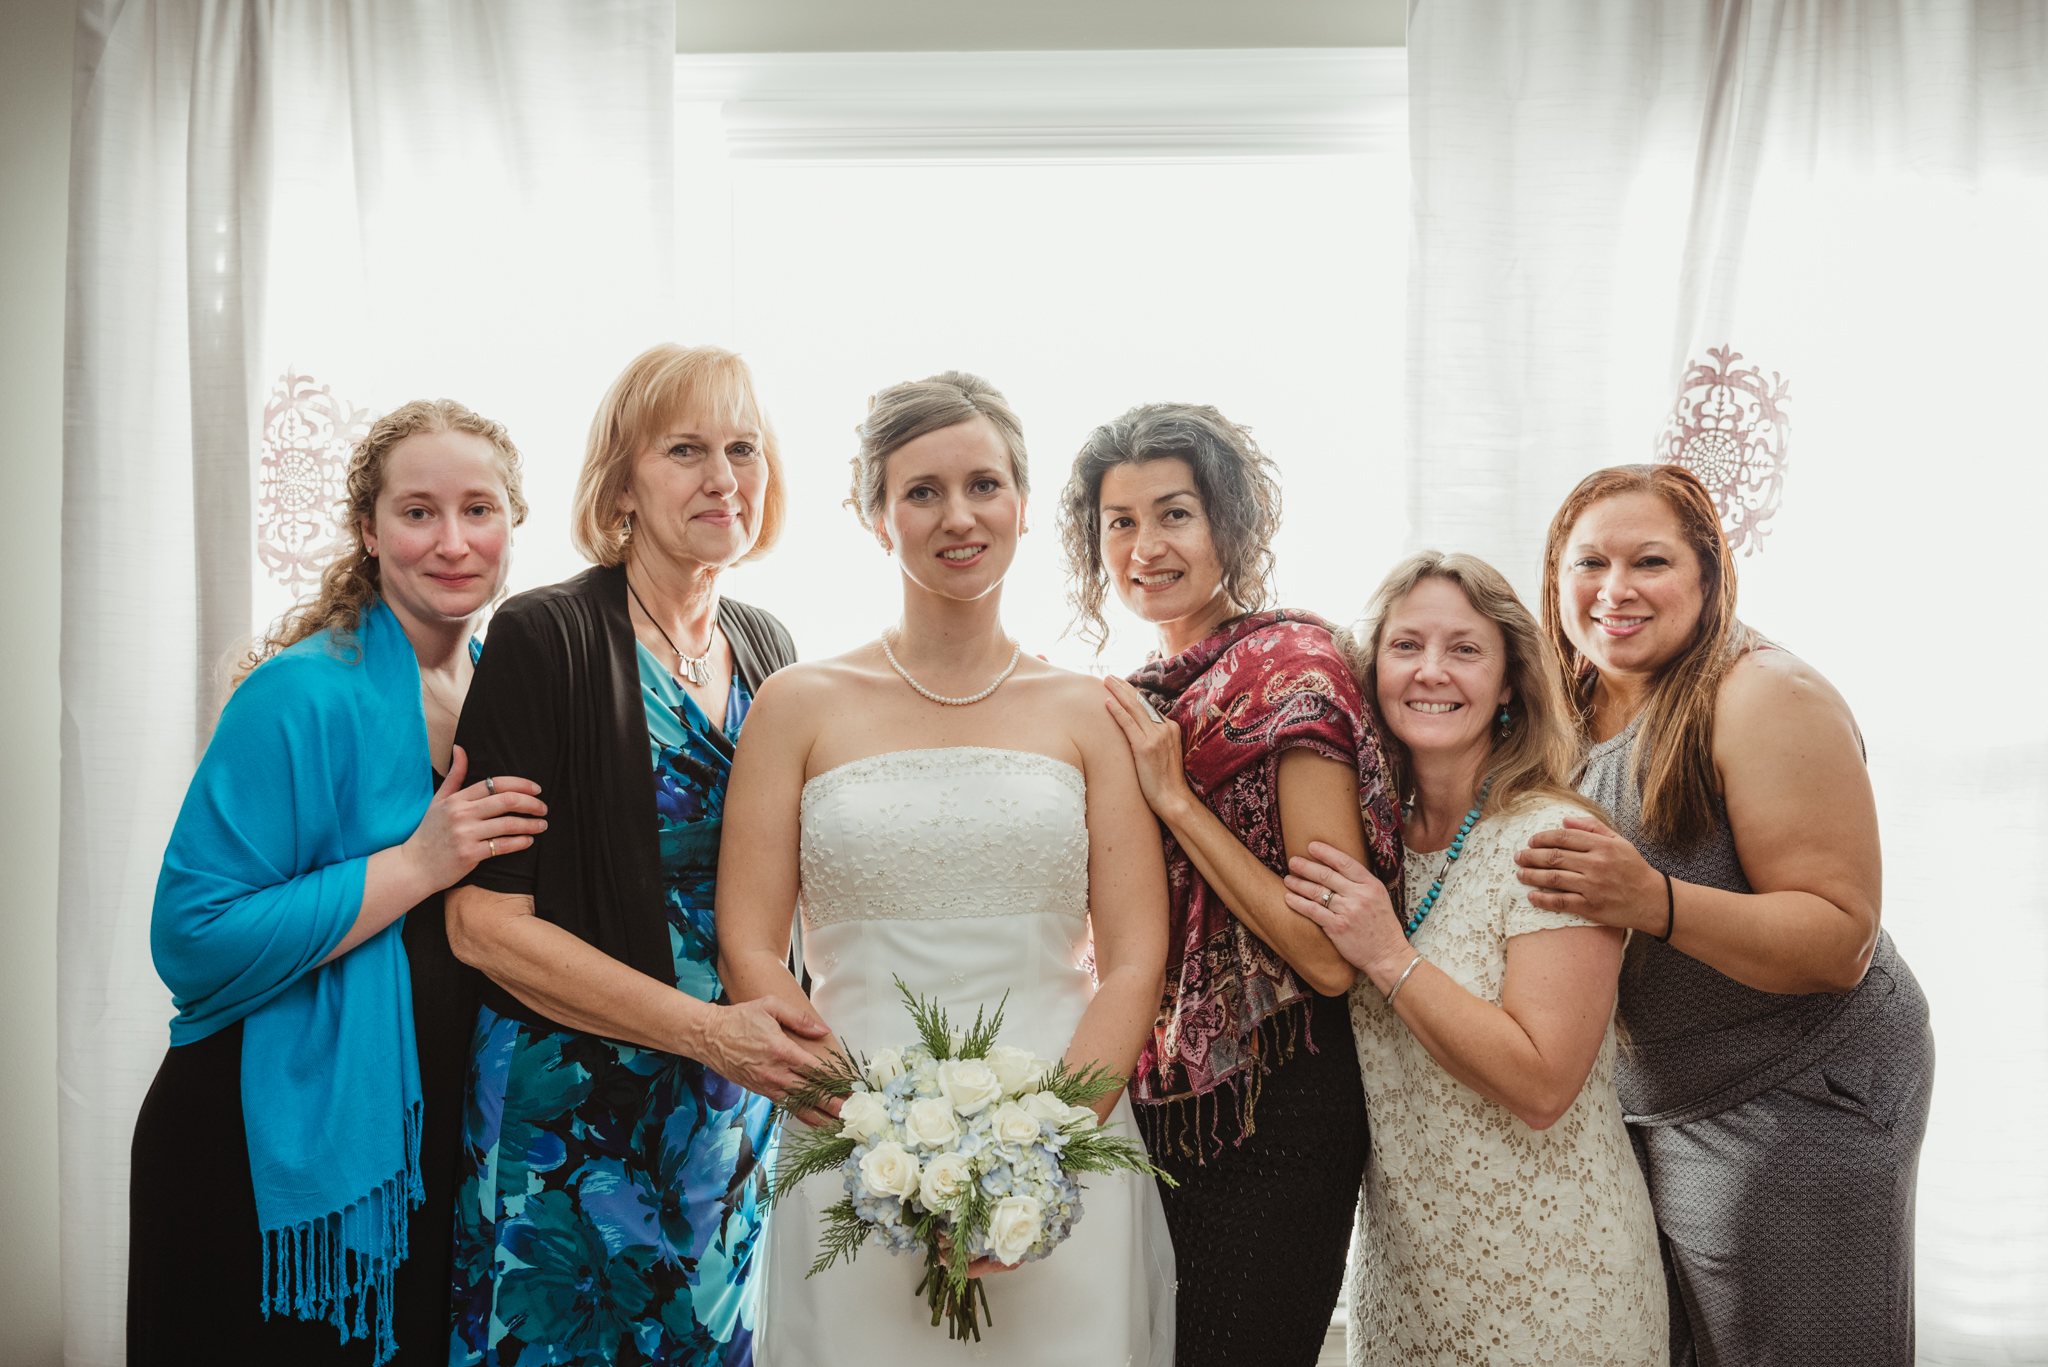 the-bride-tribe-before-she-walks-down-the-aisle-at-her-intimate-home-wedding-in-Raleigh.jpg